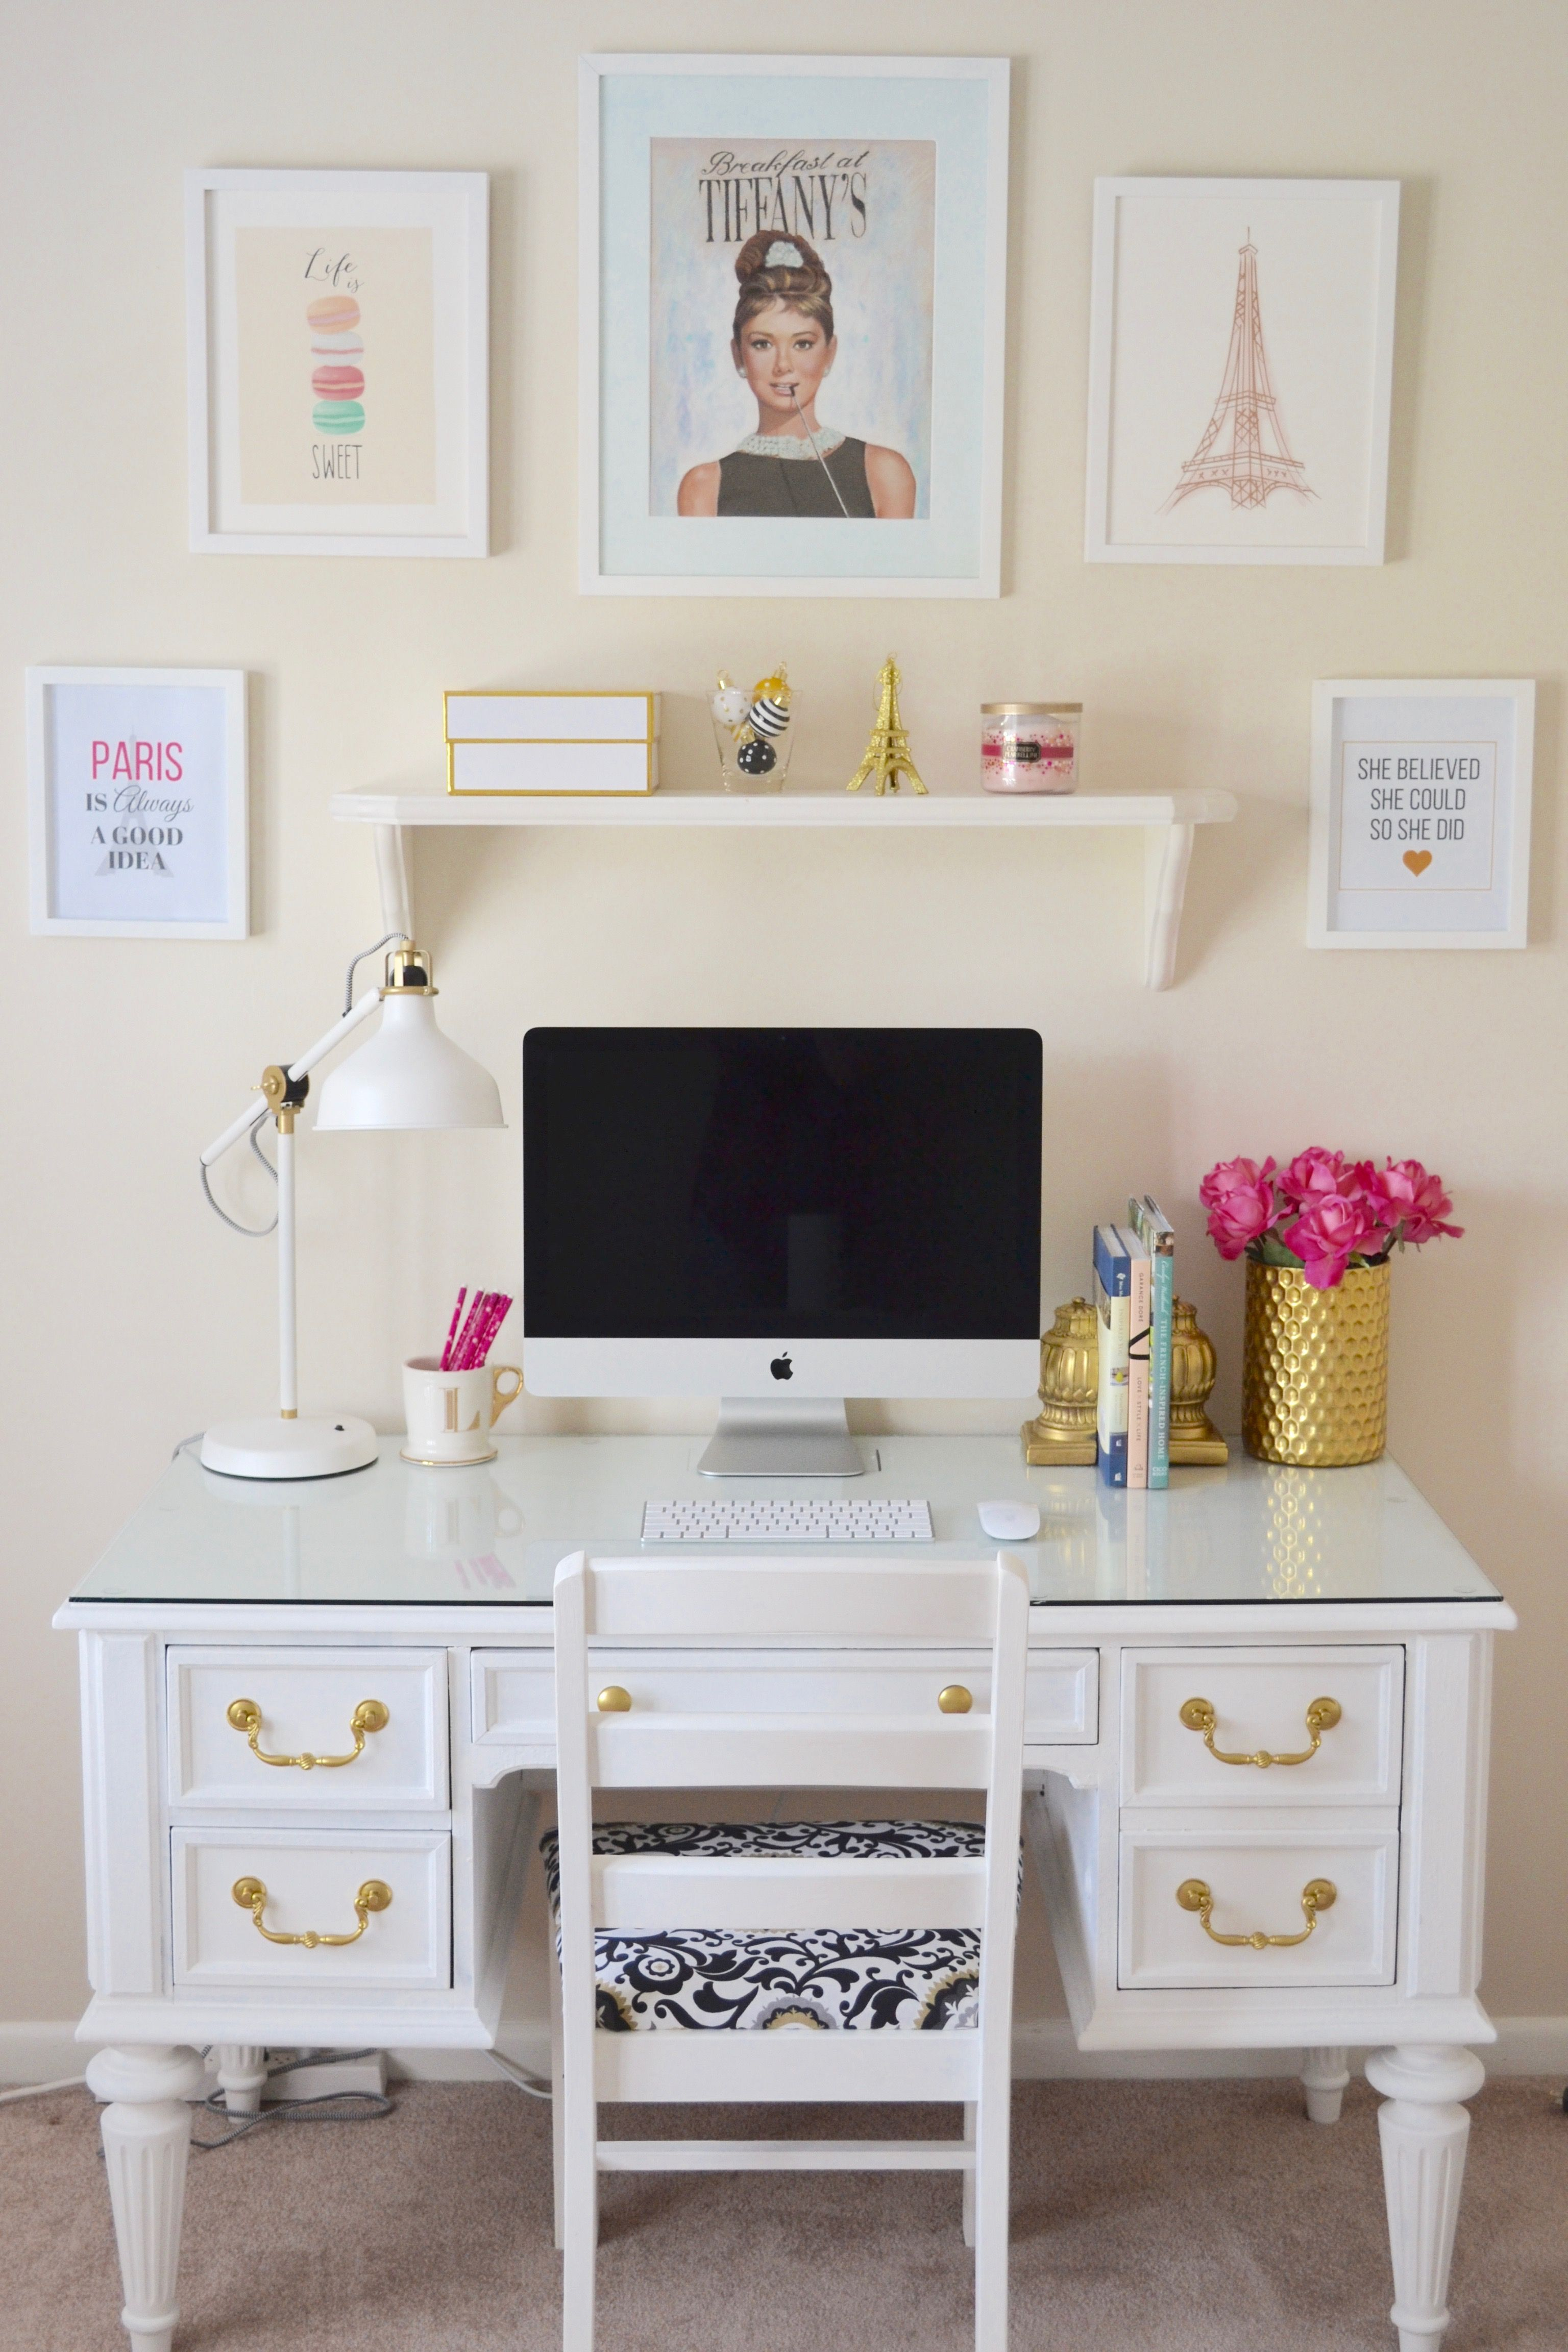 New Office Reveal + Minted Giveaway! | Home office decor ...